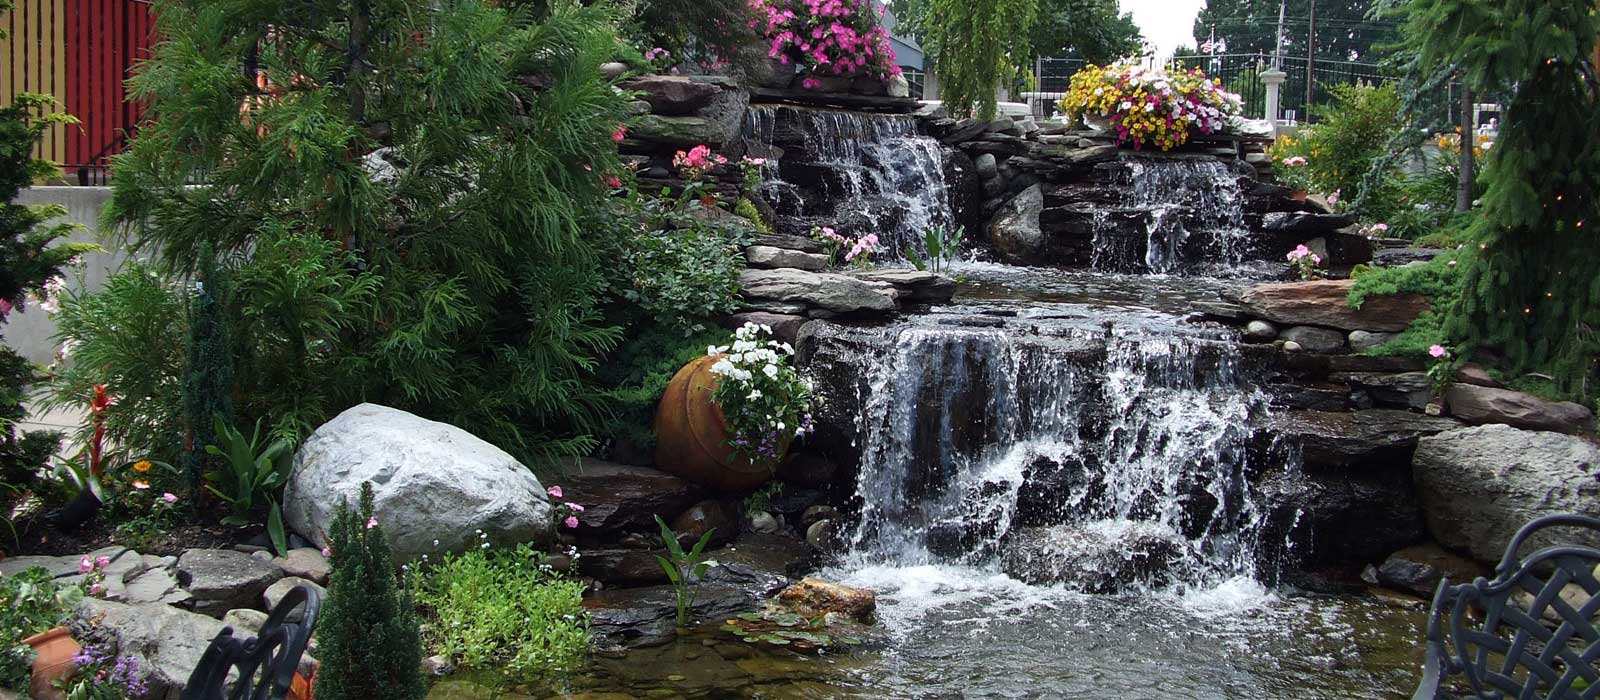 Hardscape waterfall feature in a well maintained yard in Cherry Hill New Jersey